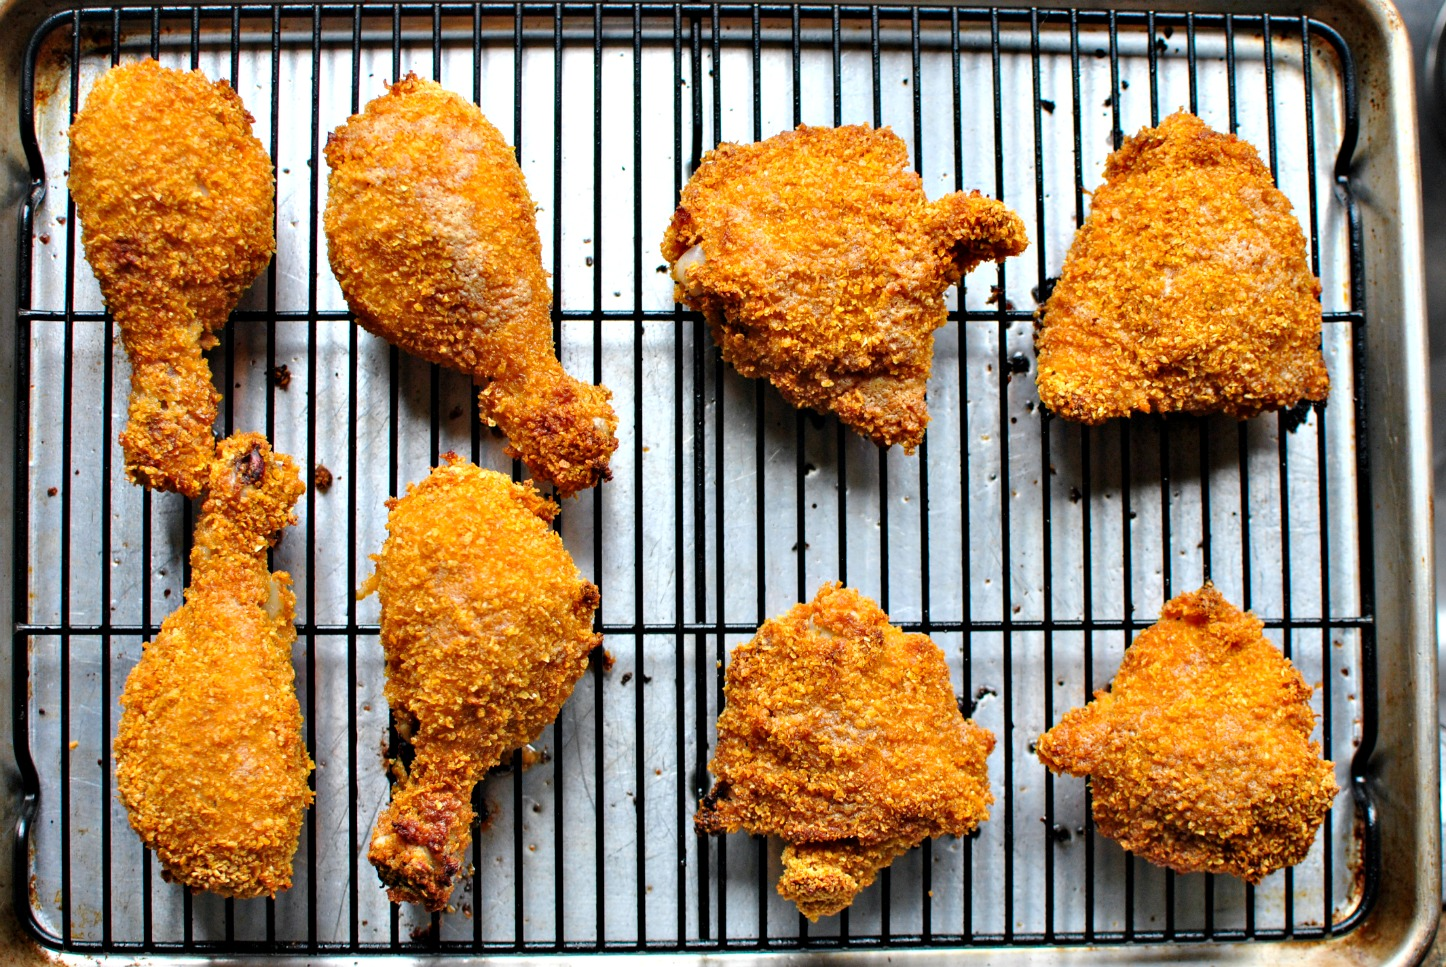 Simply Scratch Oven Fried Buttermilk Chicken - Simply Scratch